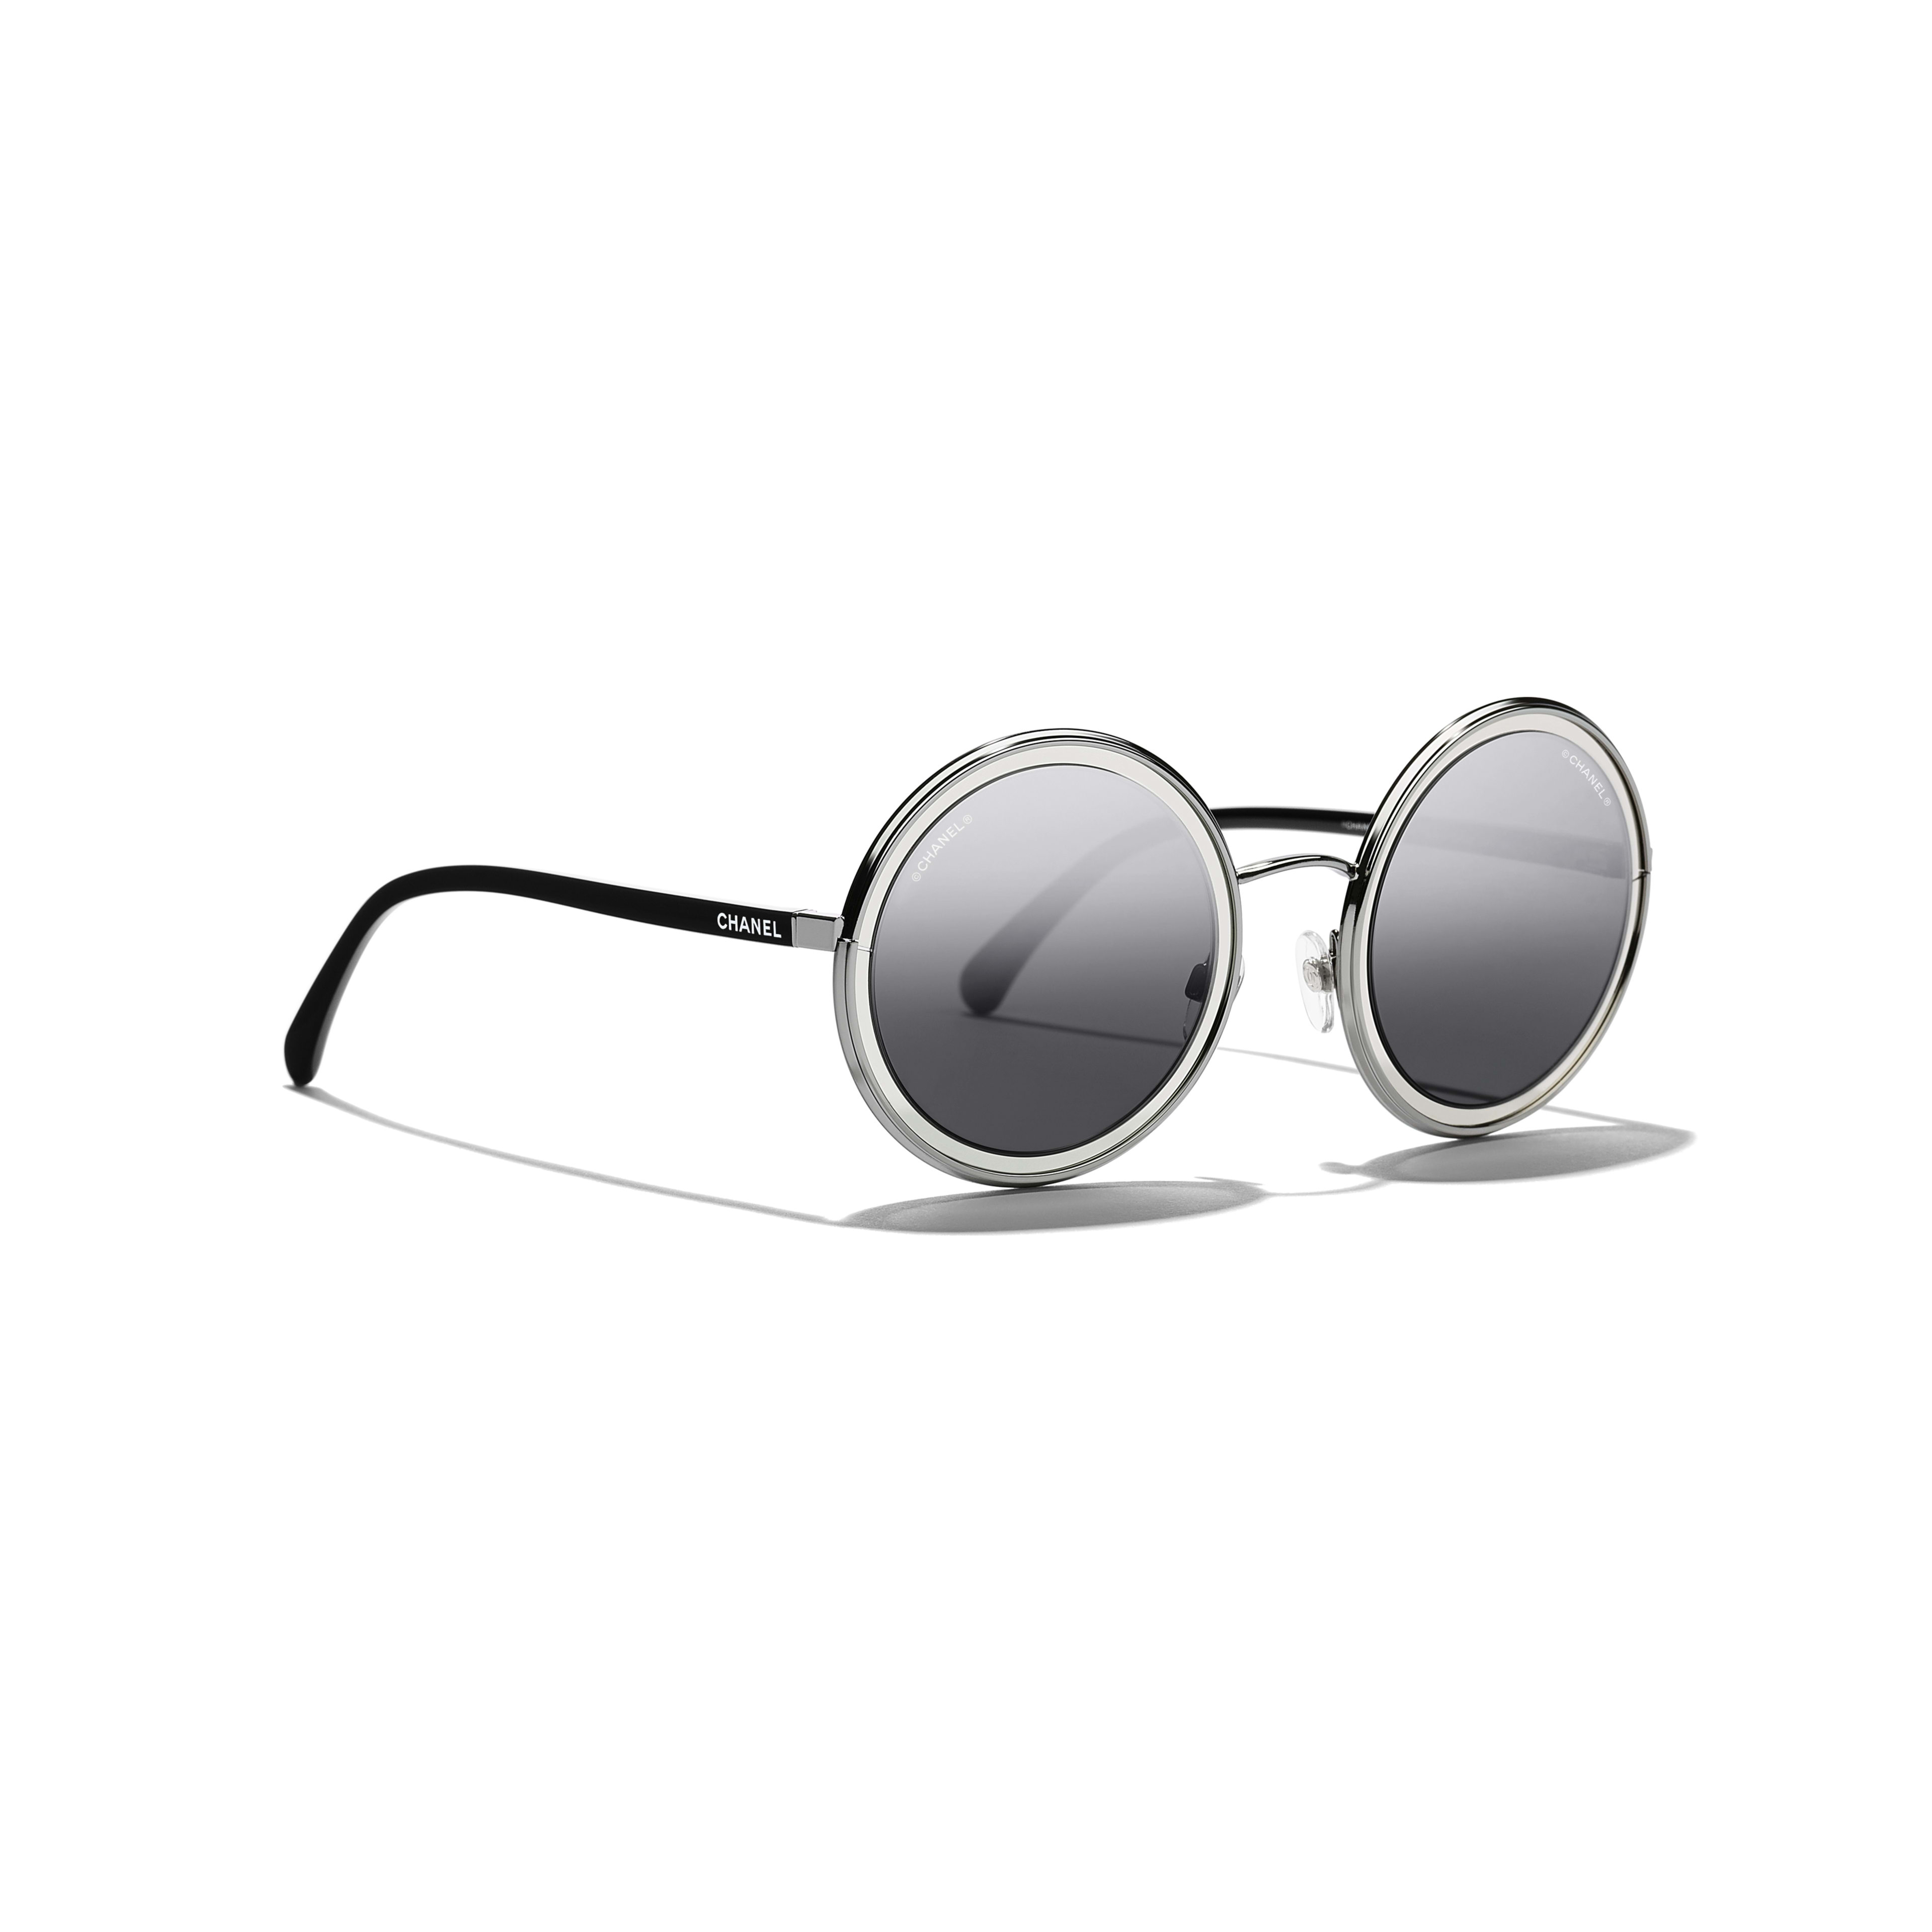 Round Sunglasses - Silver - Metal - Extra view - see full sized version